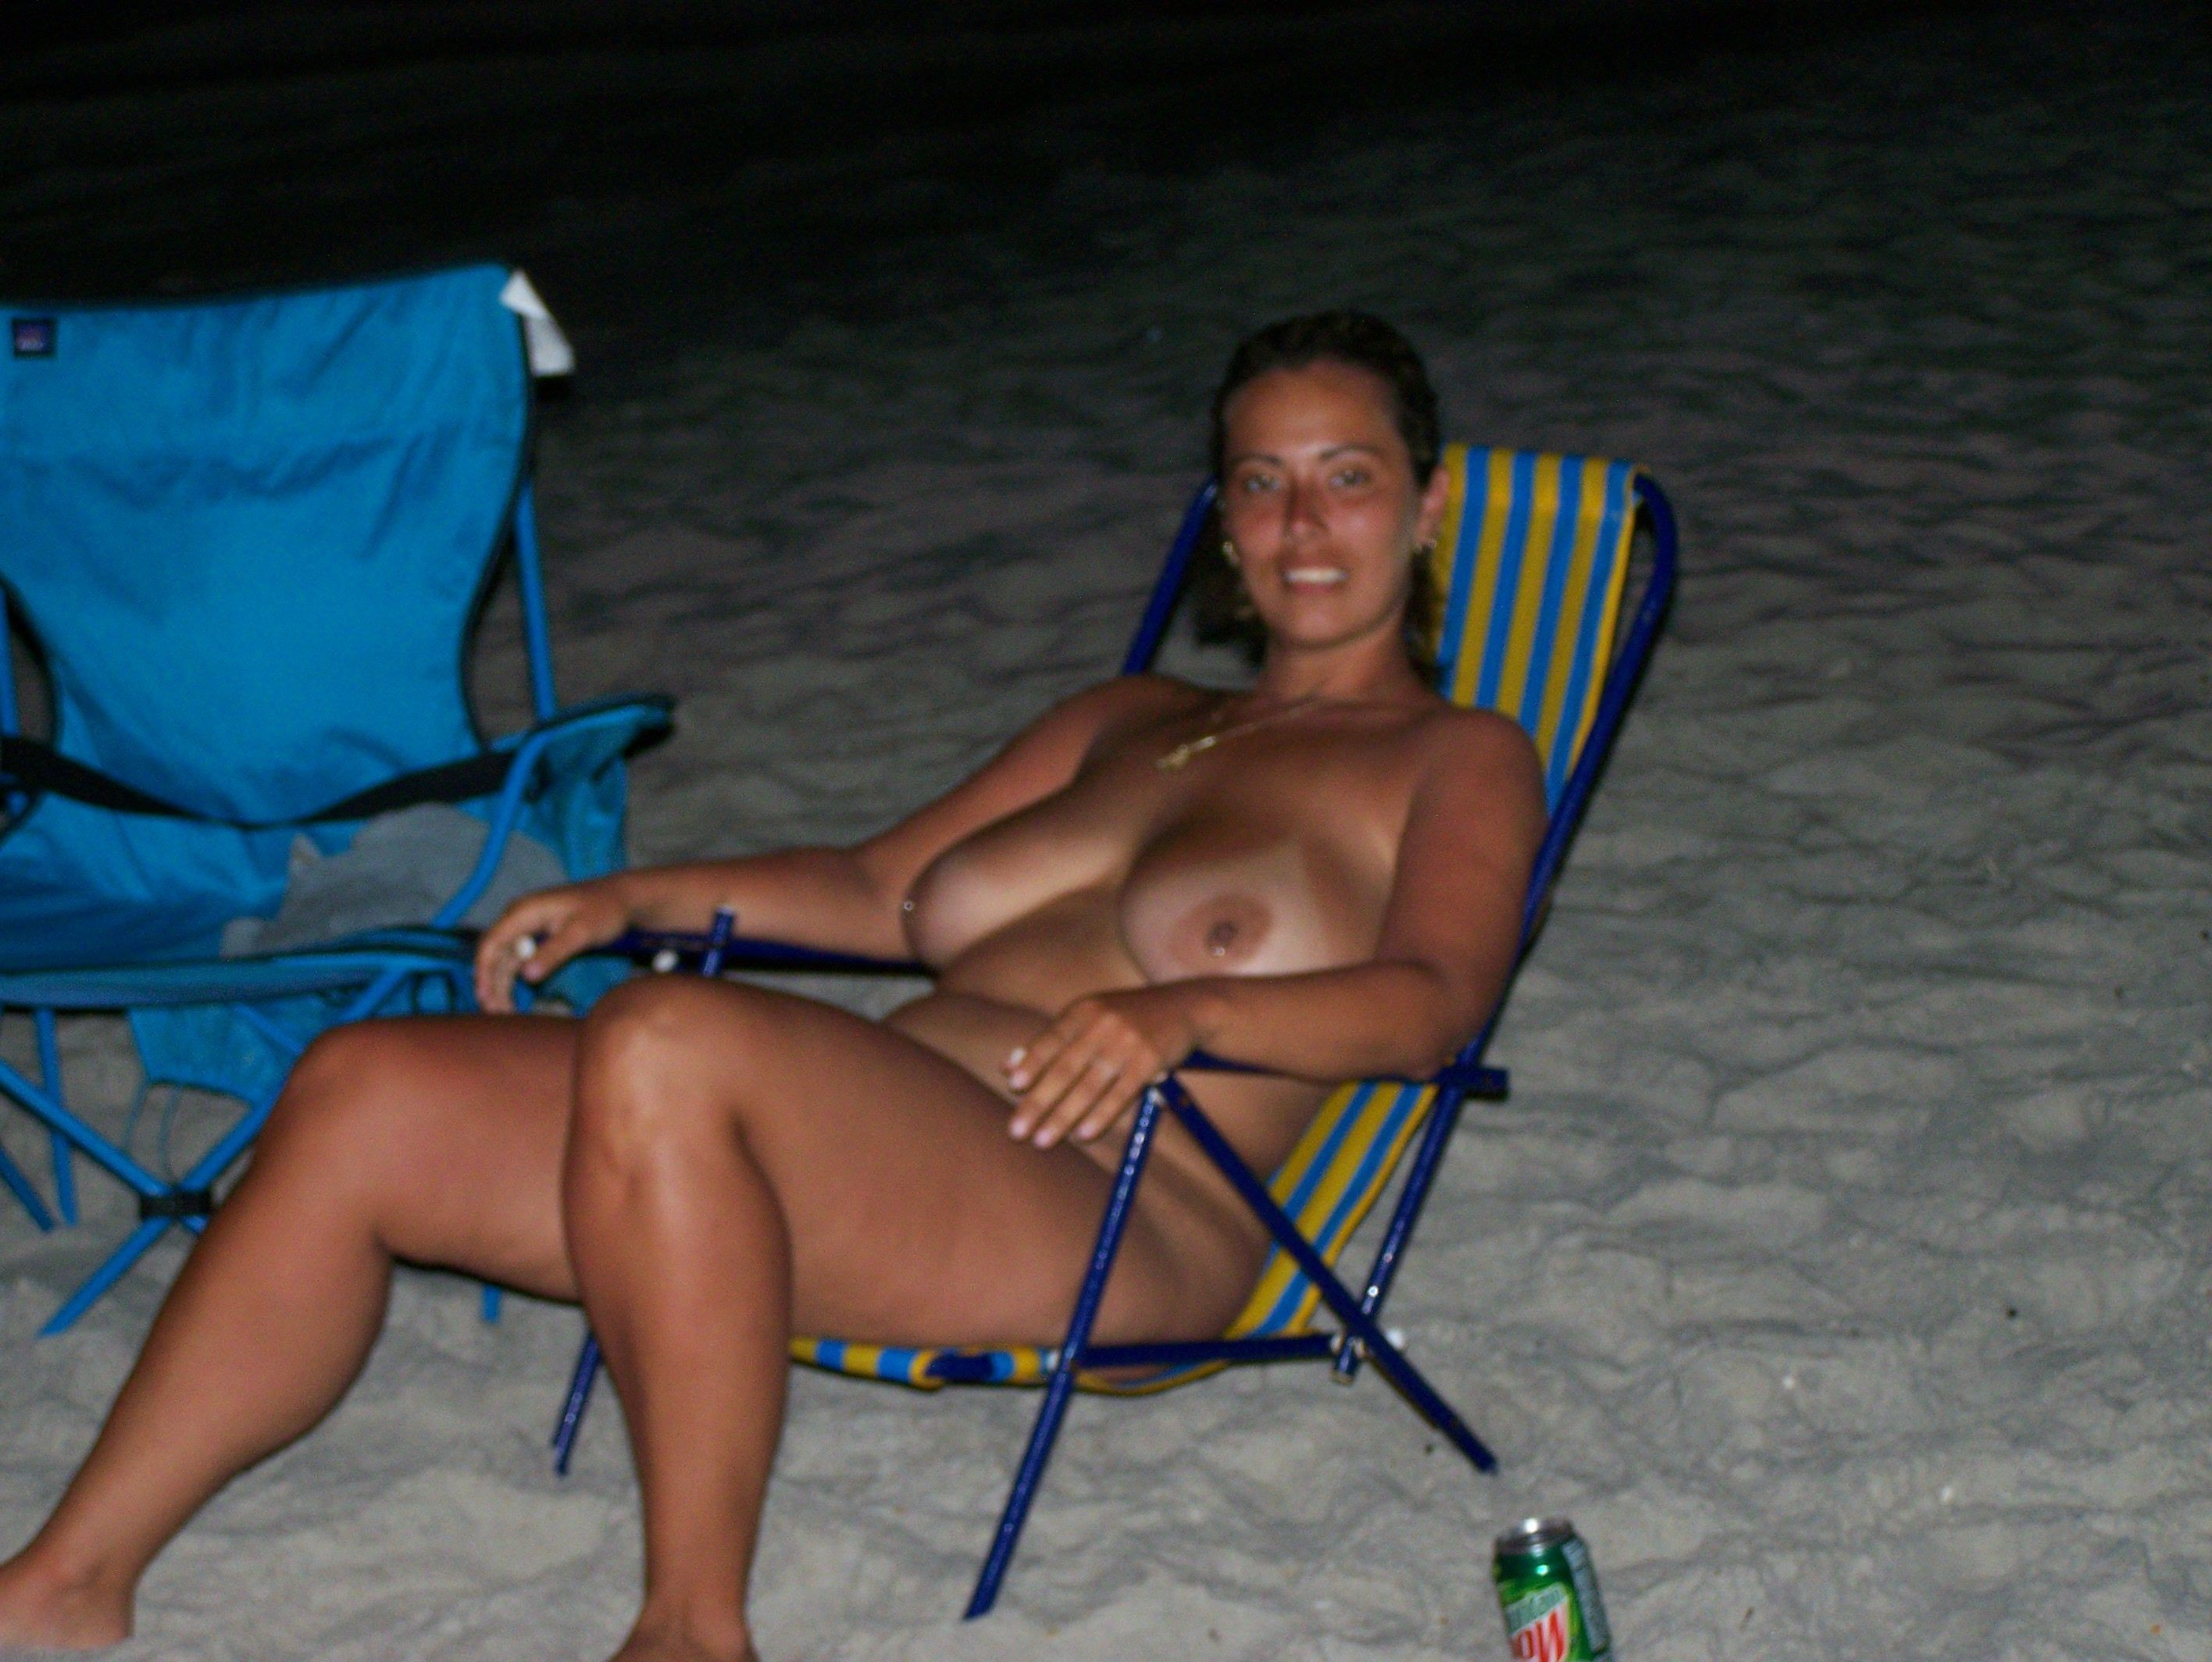 Nudist voluptuous hottie enjoying a mountain dew